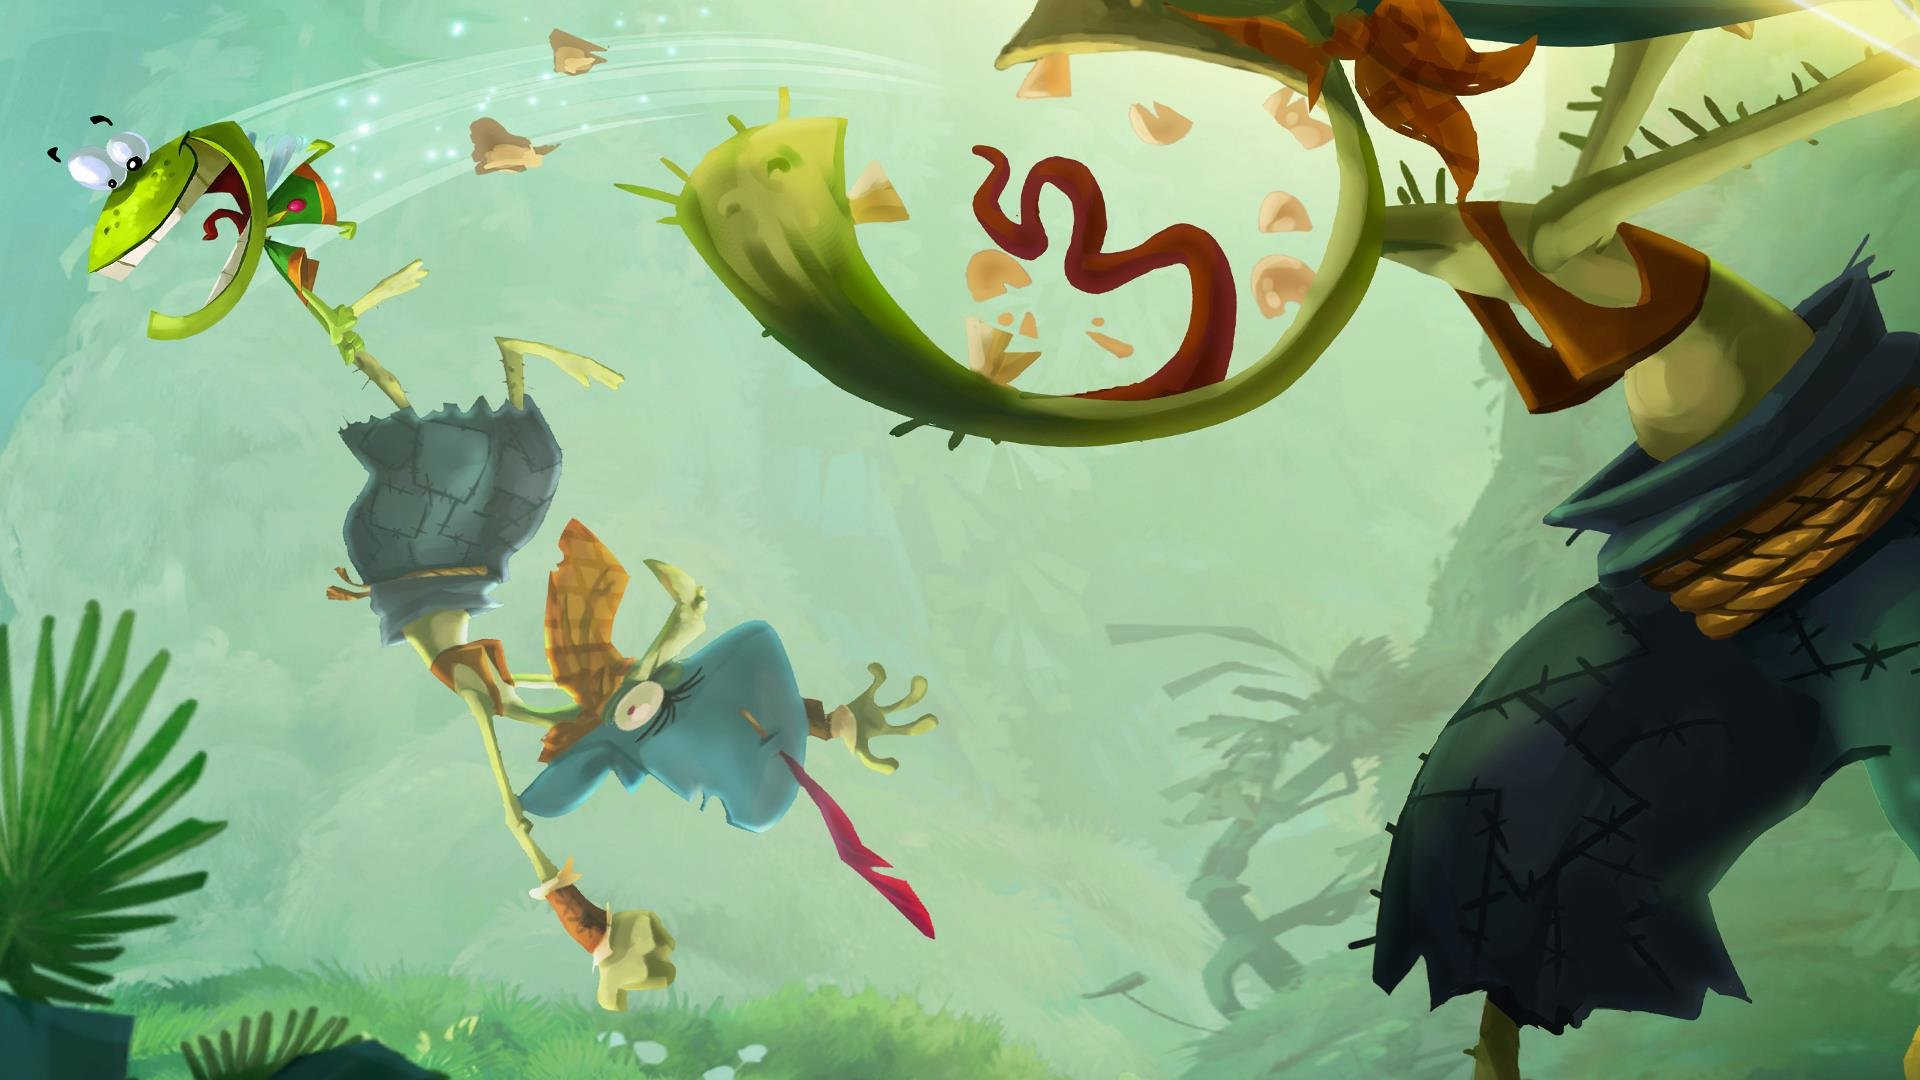 Free download Rayman Legends wallpaper ID:26529 full hd for computer